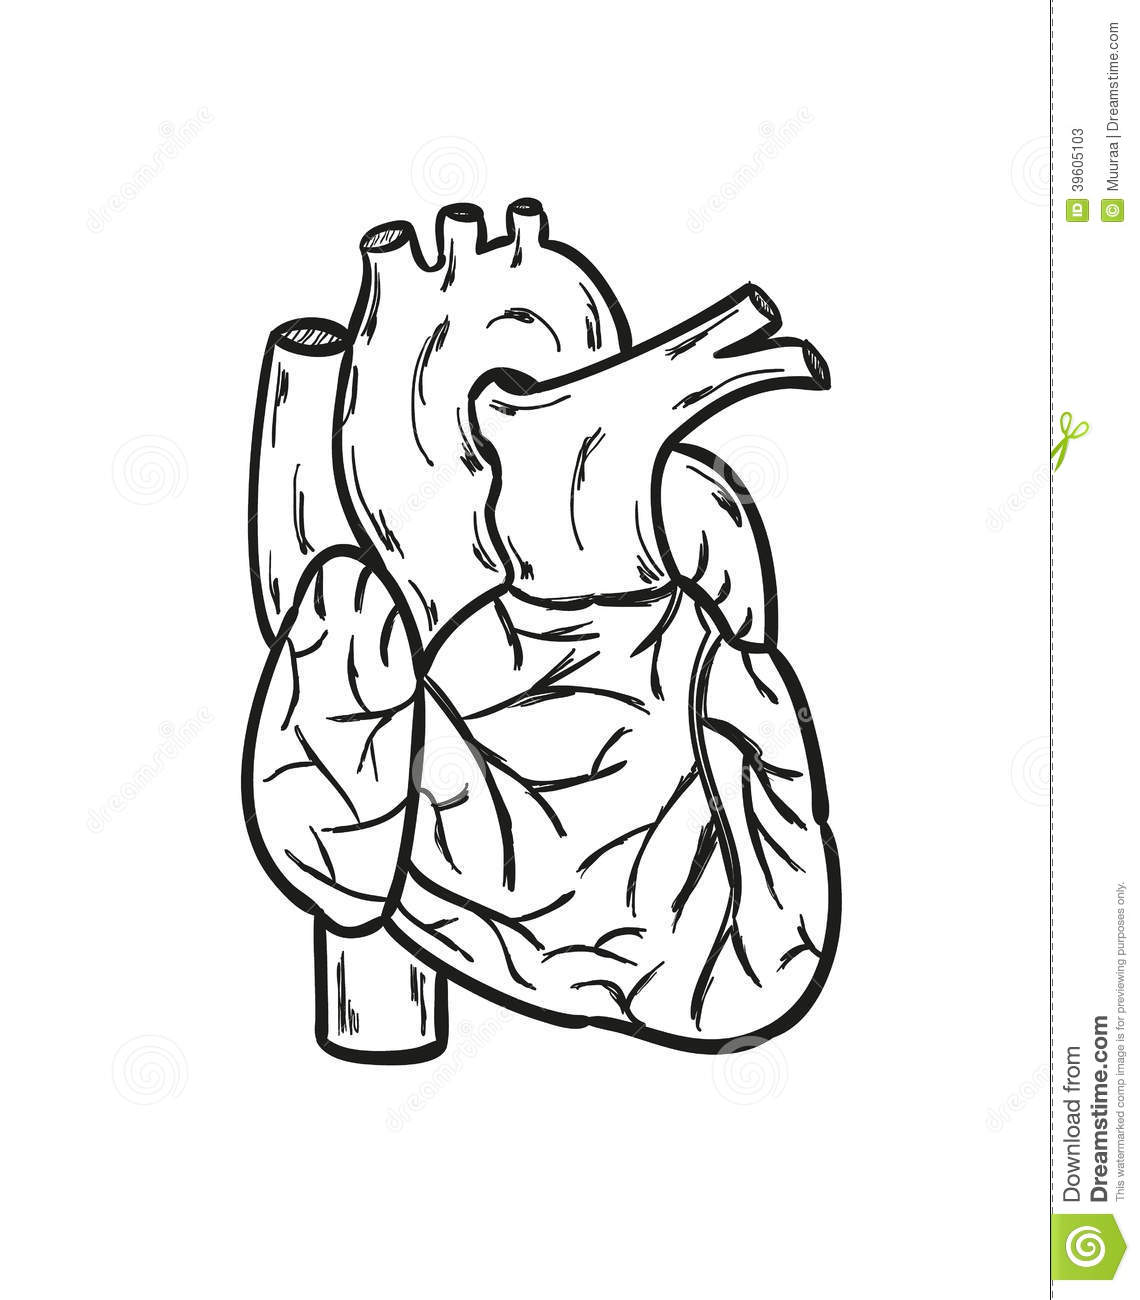 Coeur Dessin 3d Human Heart Stock Vector Illustration Of Healthcare